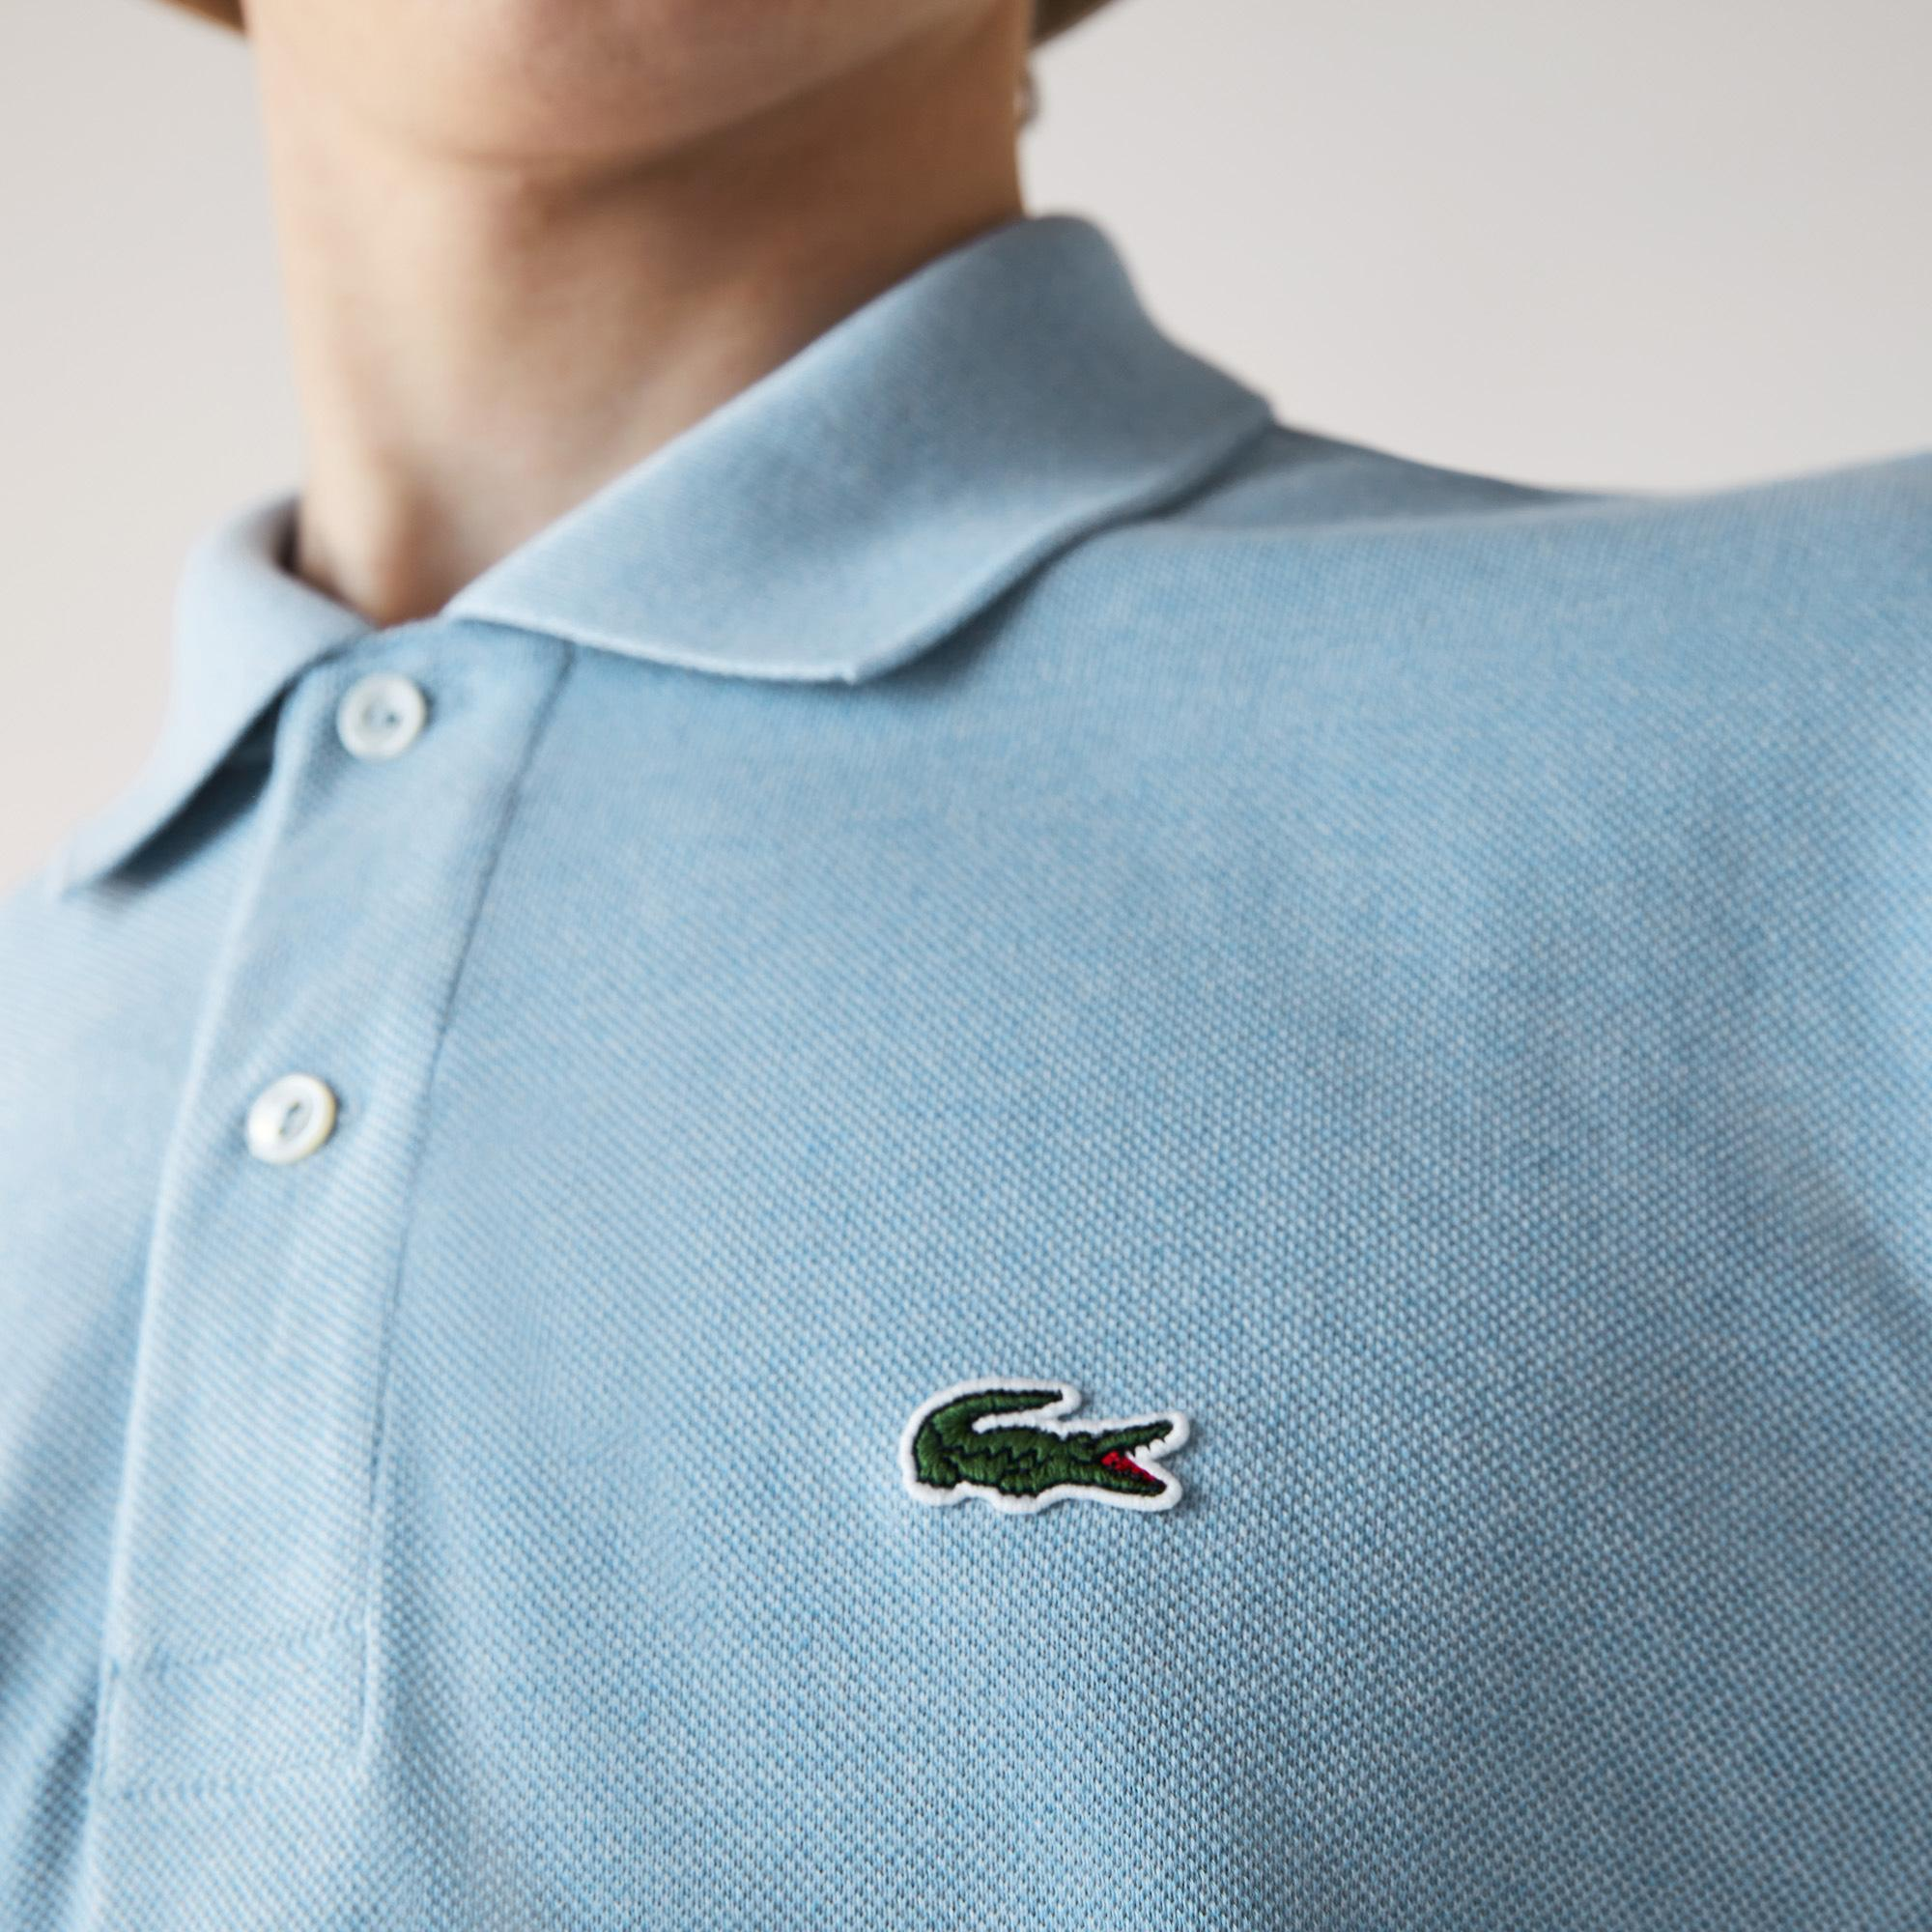 Lacoste Marl Classic Fit L.12.64 Polo Shirt